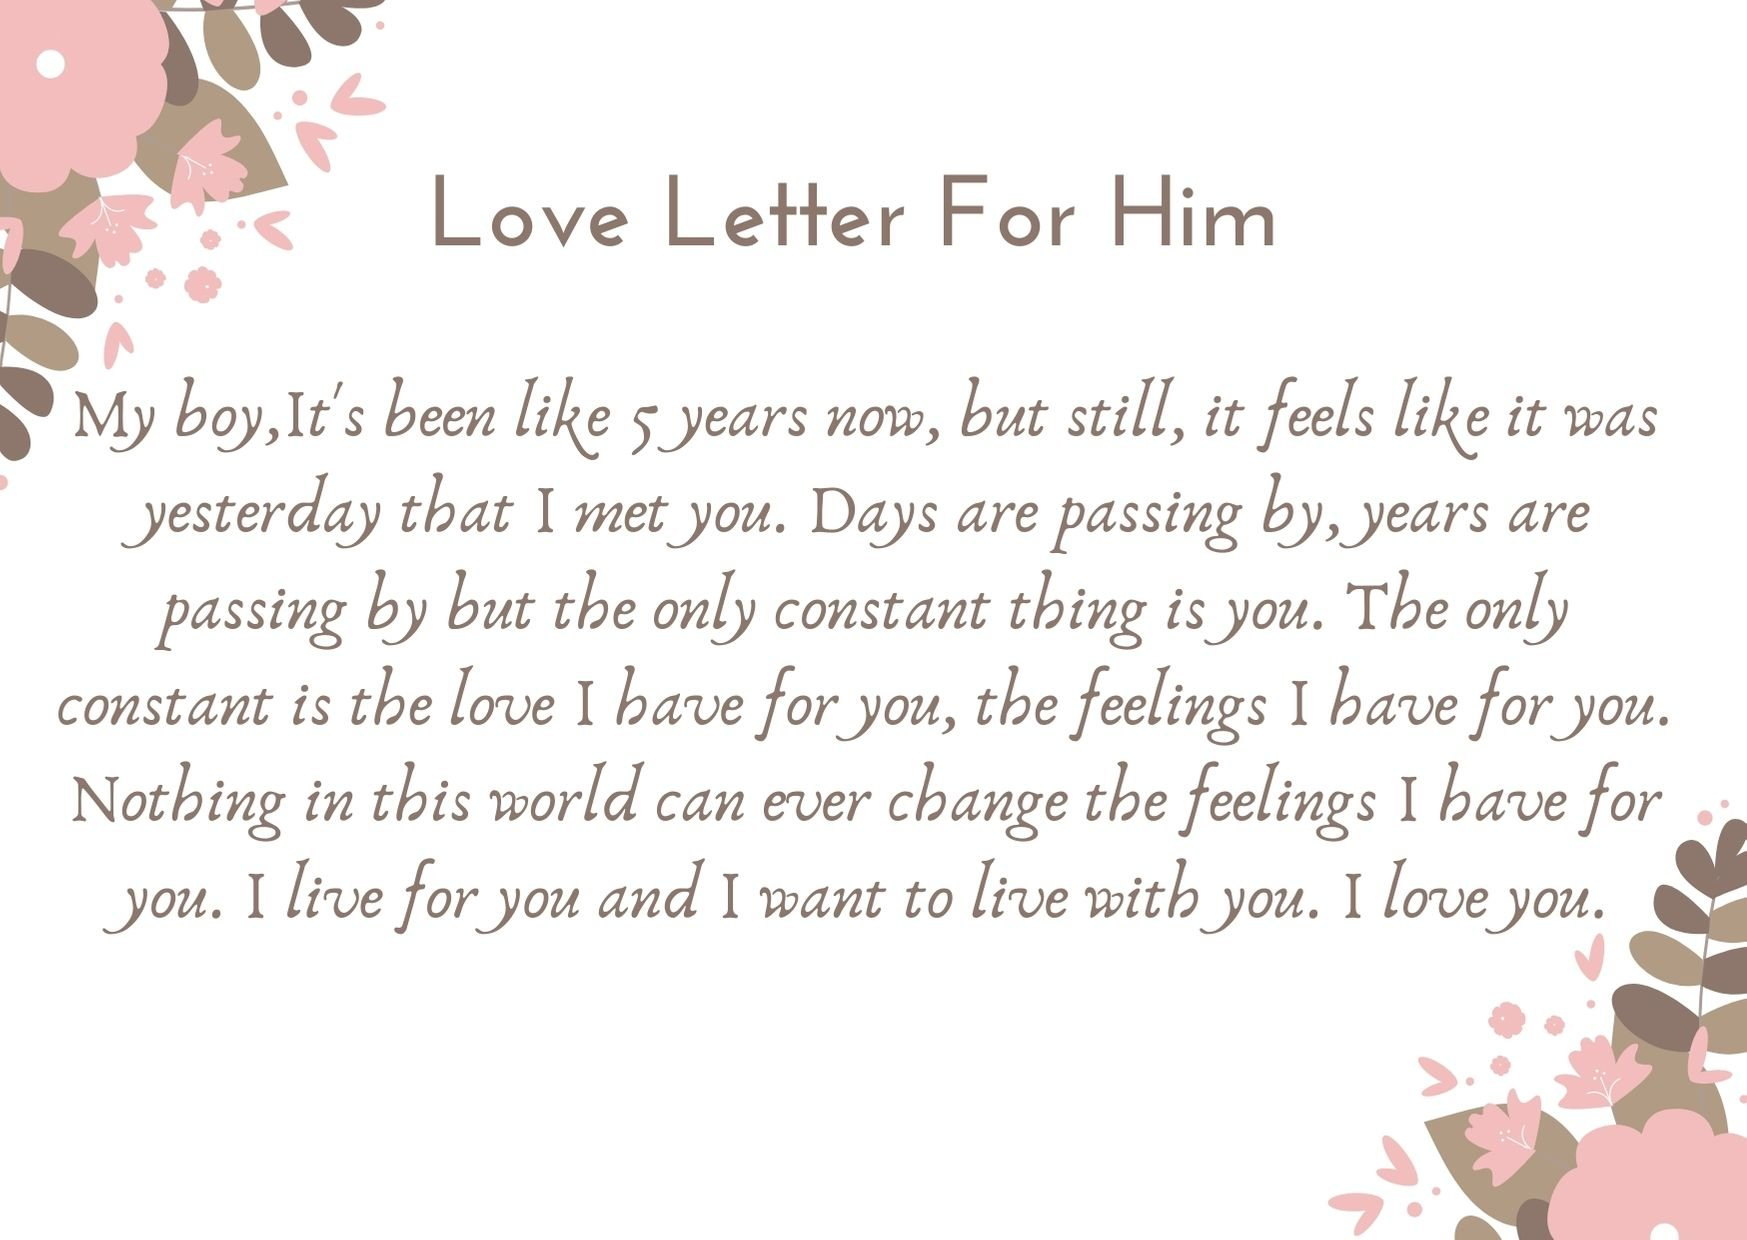 Love Letter For Him